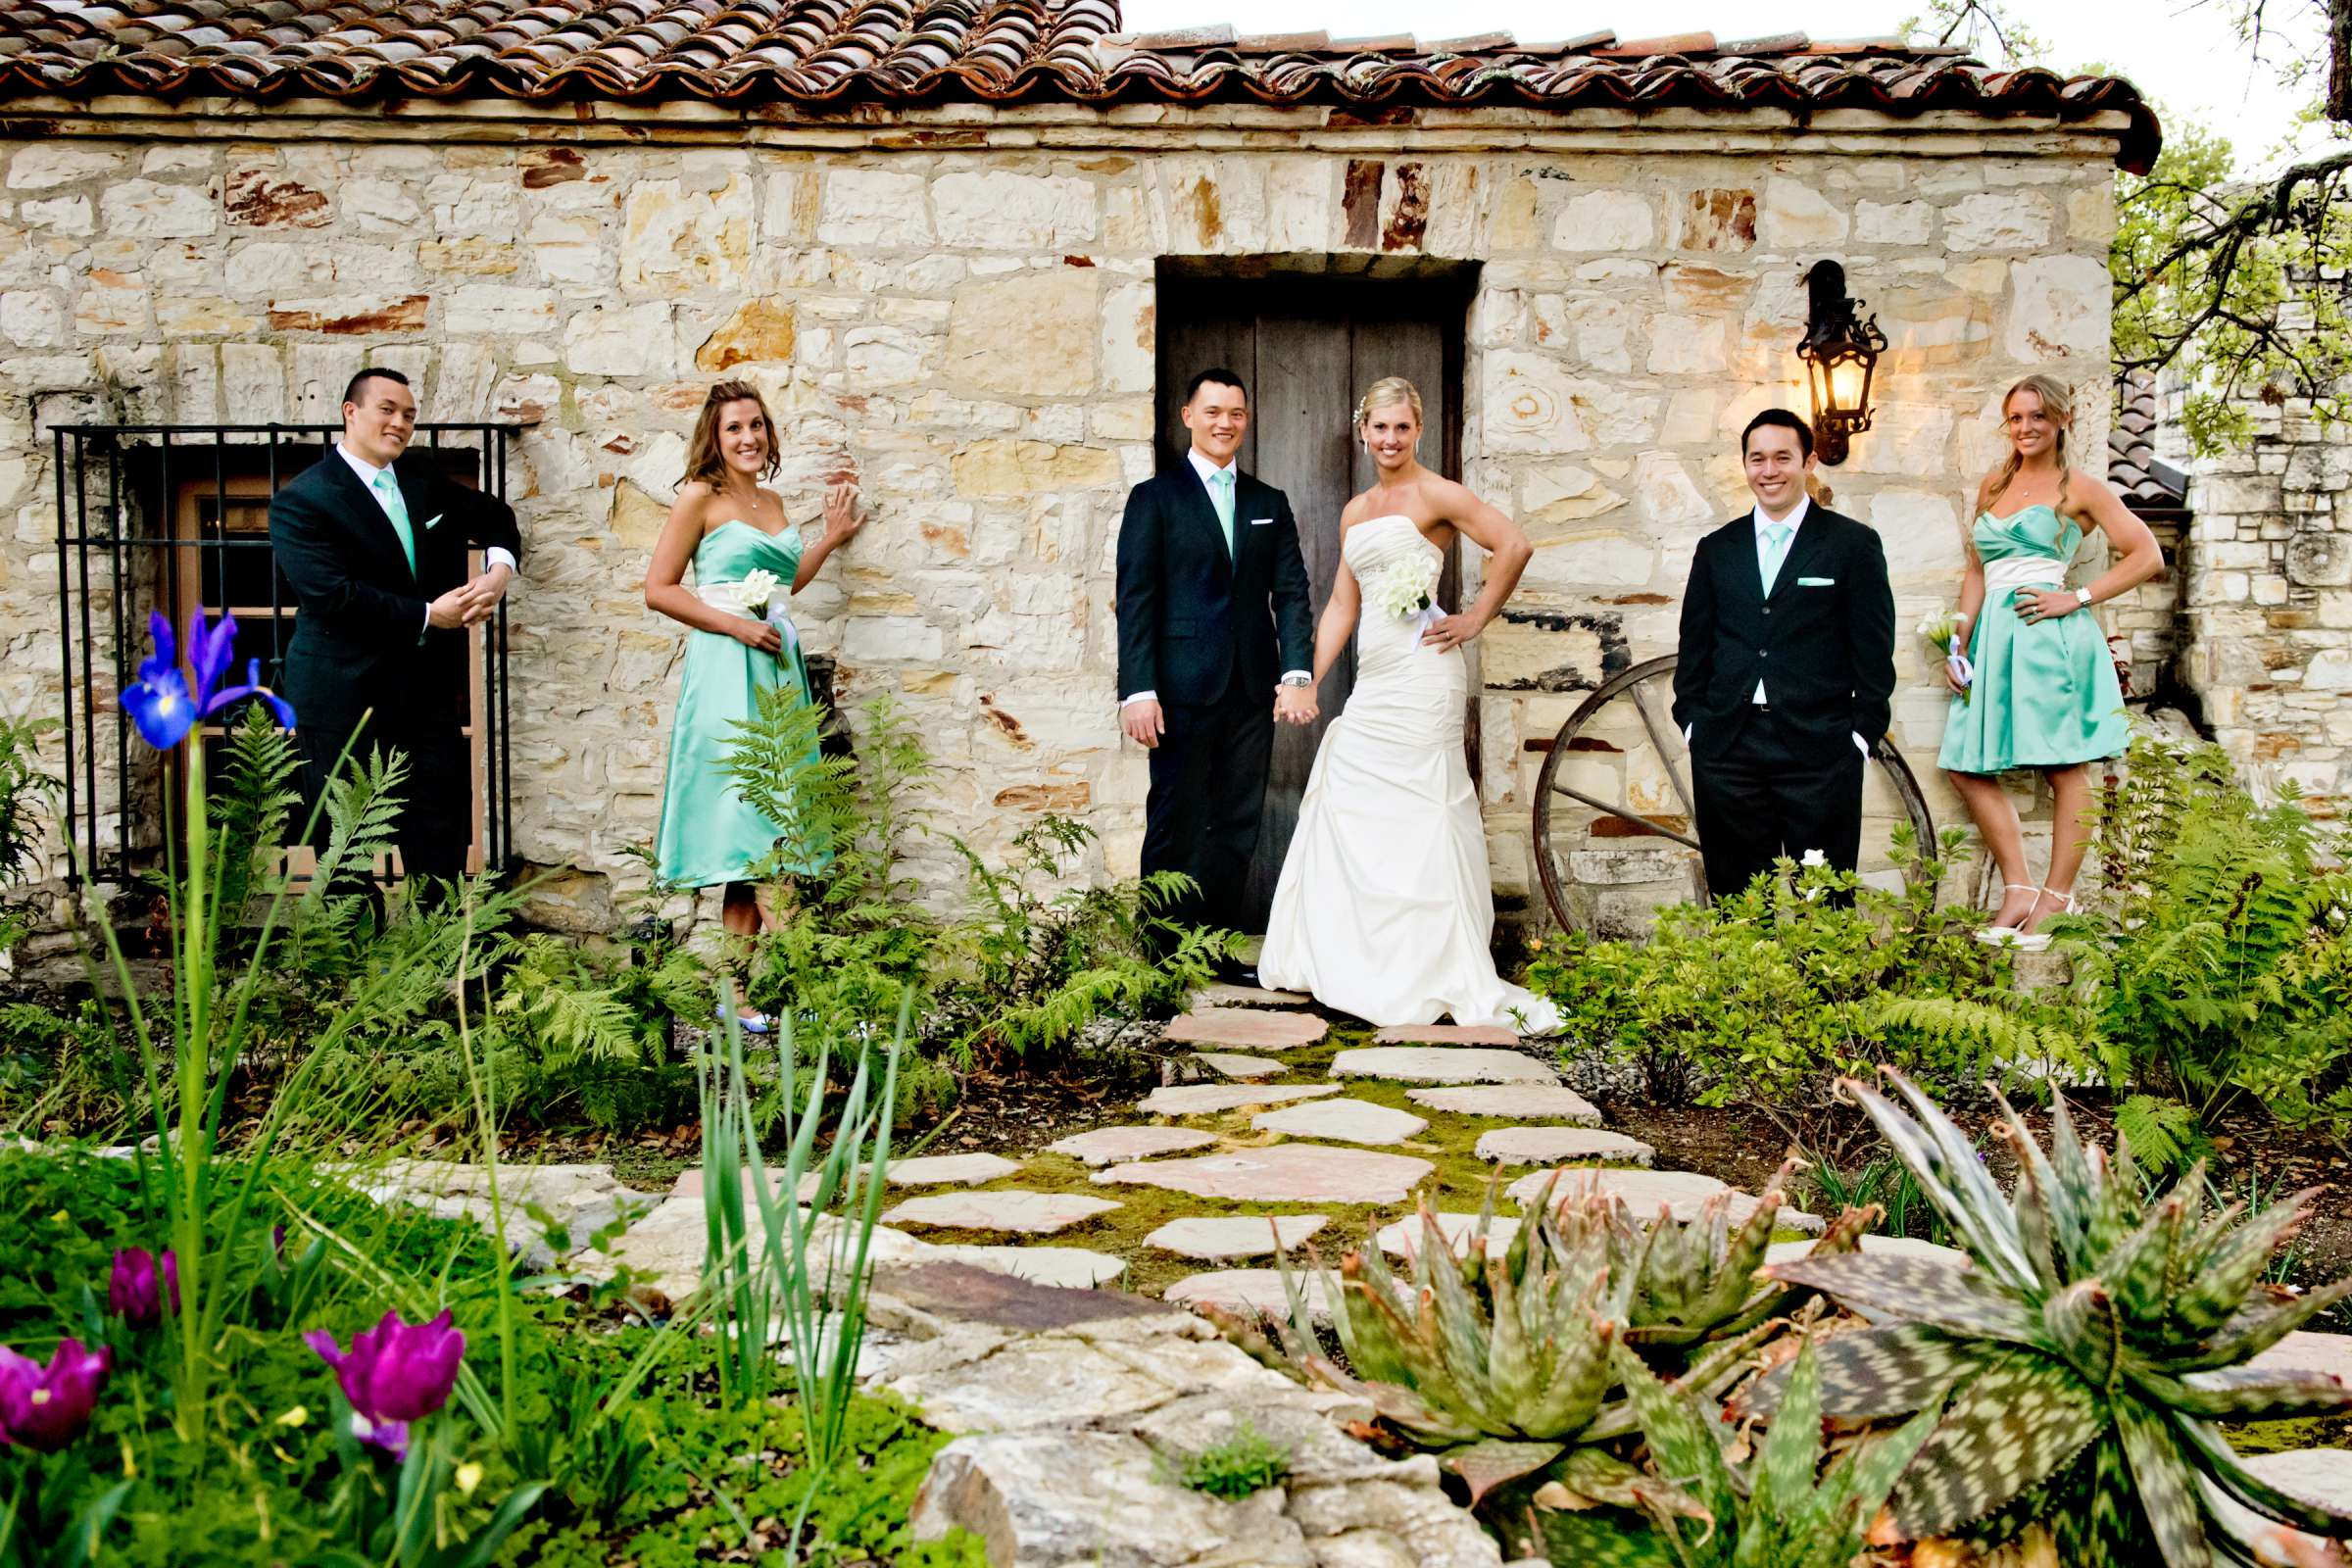 Holman Ranch Wedding, Kaley and Jason Wedding Photo #356233 by True Photography